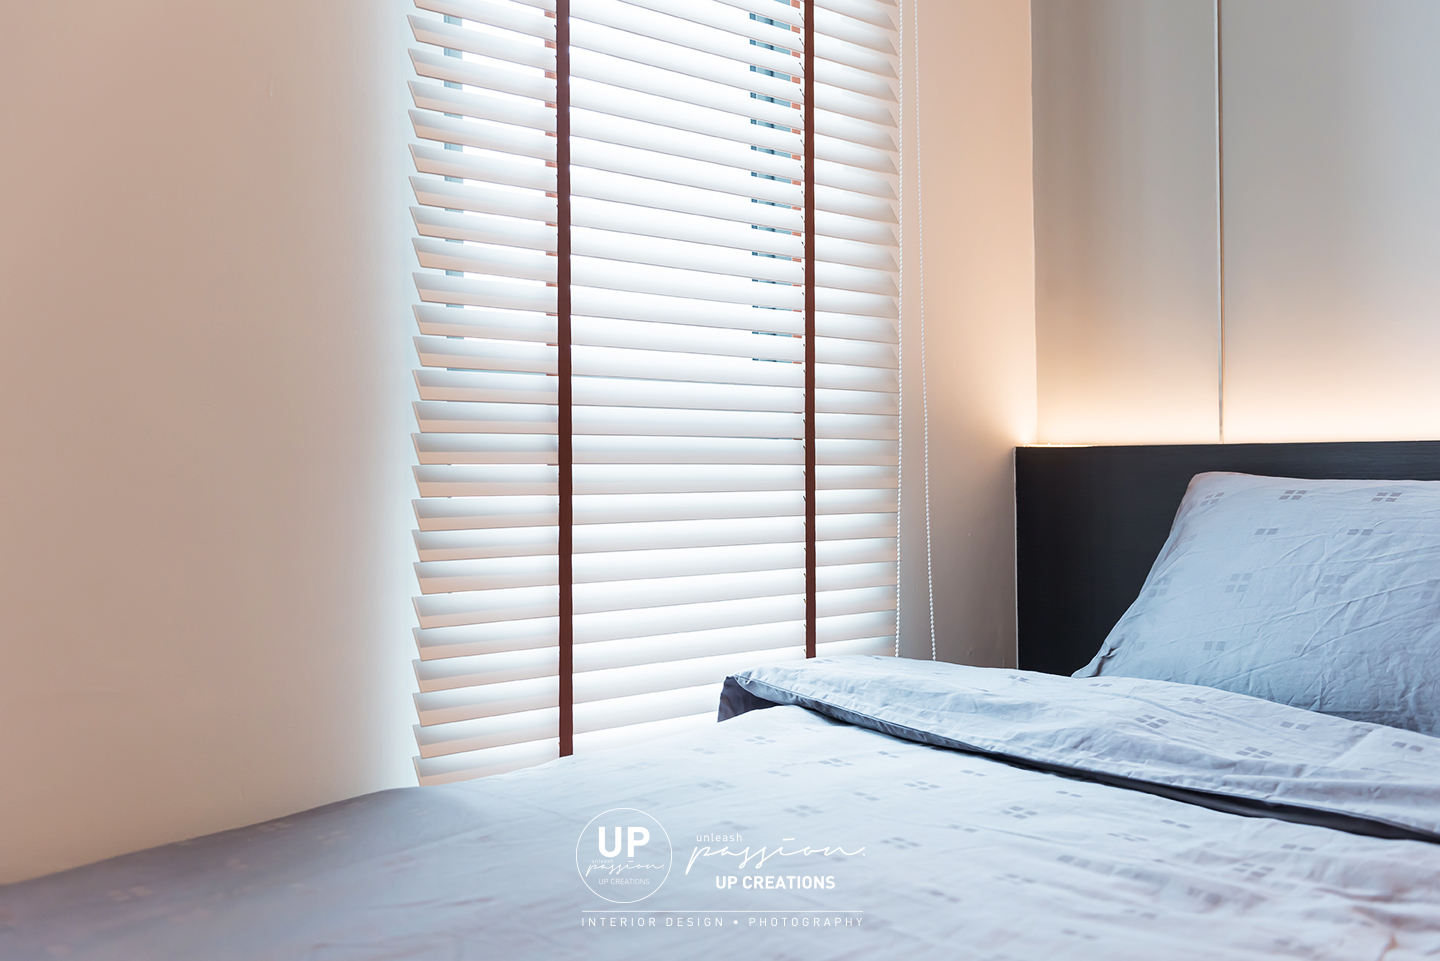 trinity aquata condo guest room with single bed with bedhead in led strip light and venetian blind